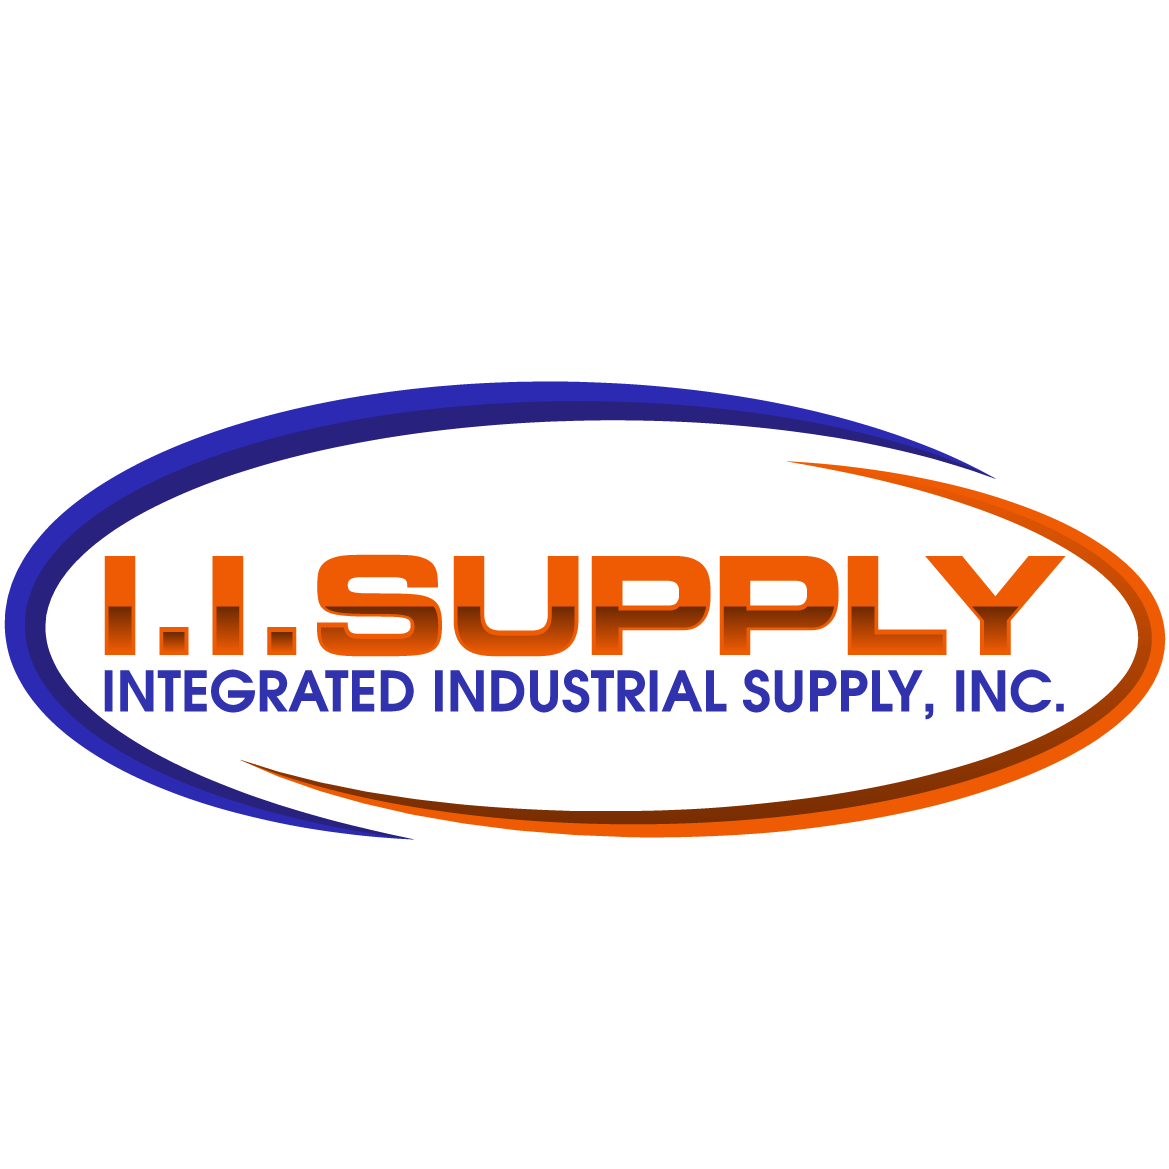 Integrated Industrial Supply